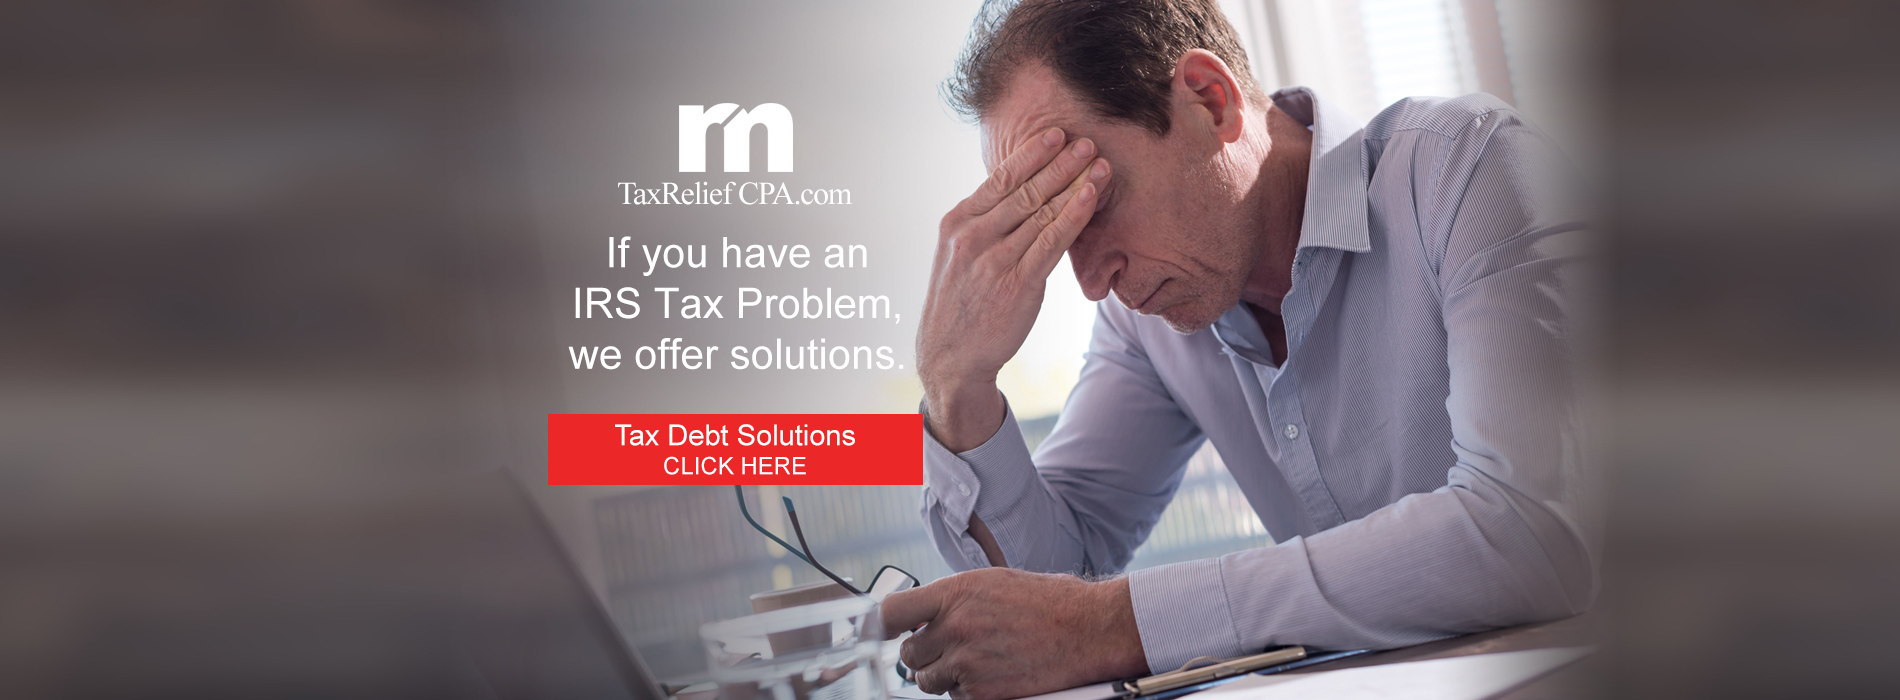 TAX_RELIEF_BANNER_3